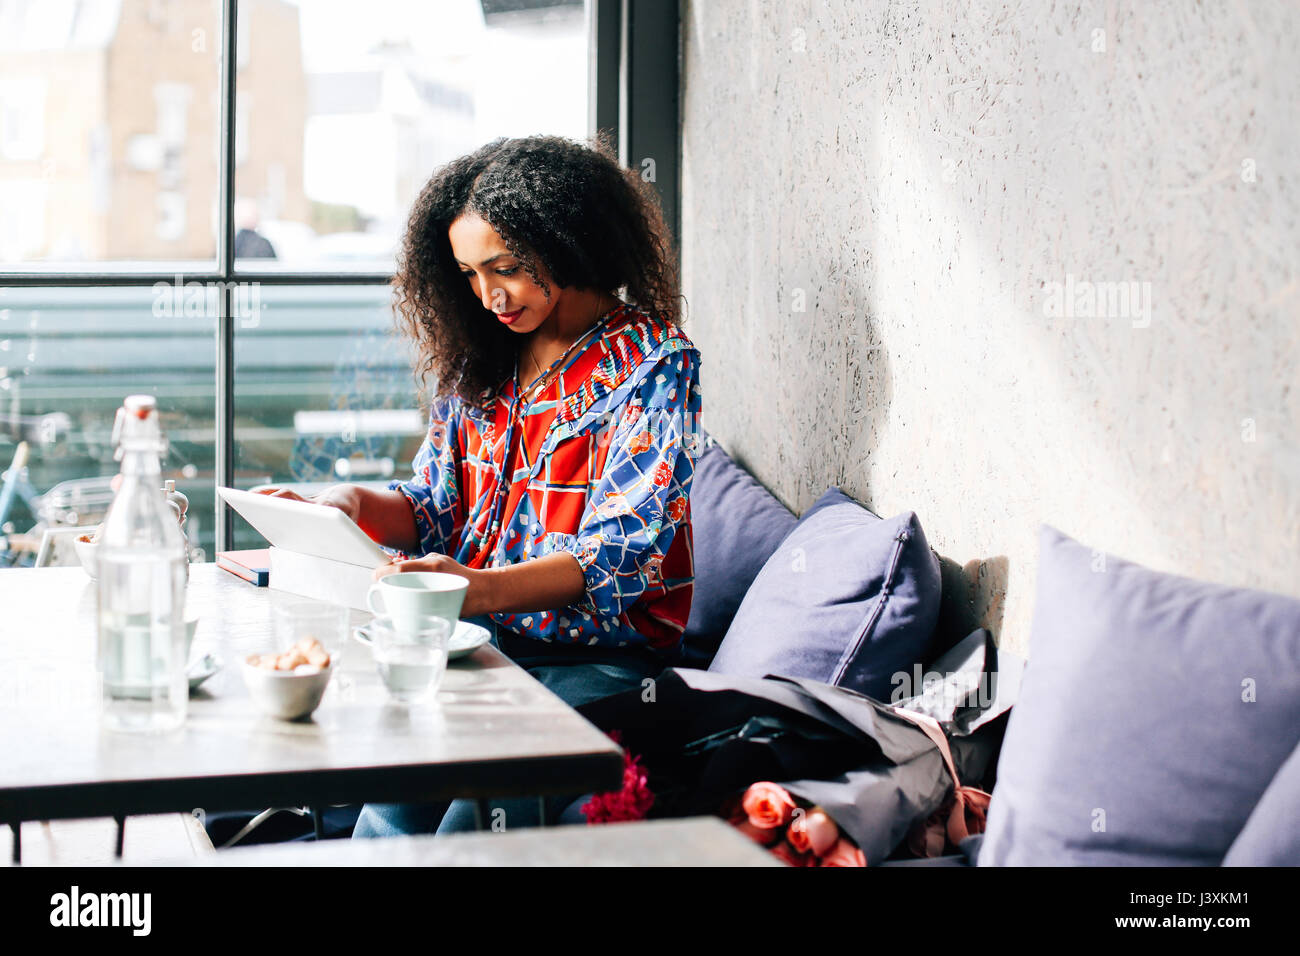 Mid adult woman using digital tablet in cafe Photo Stock